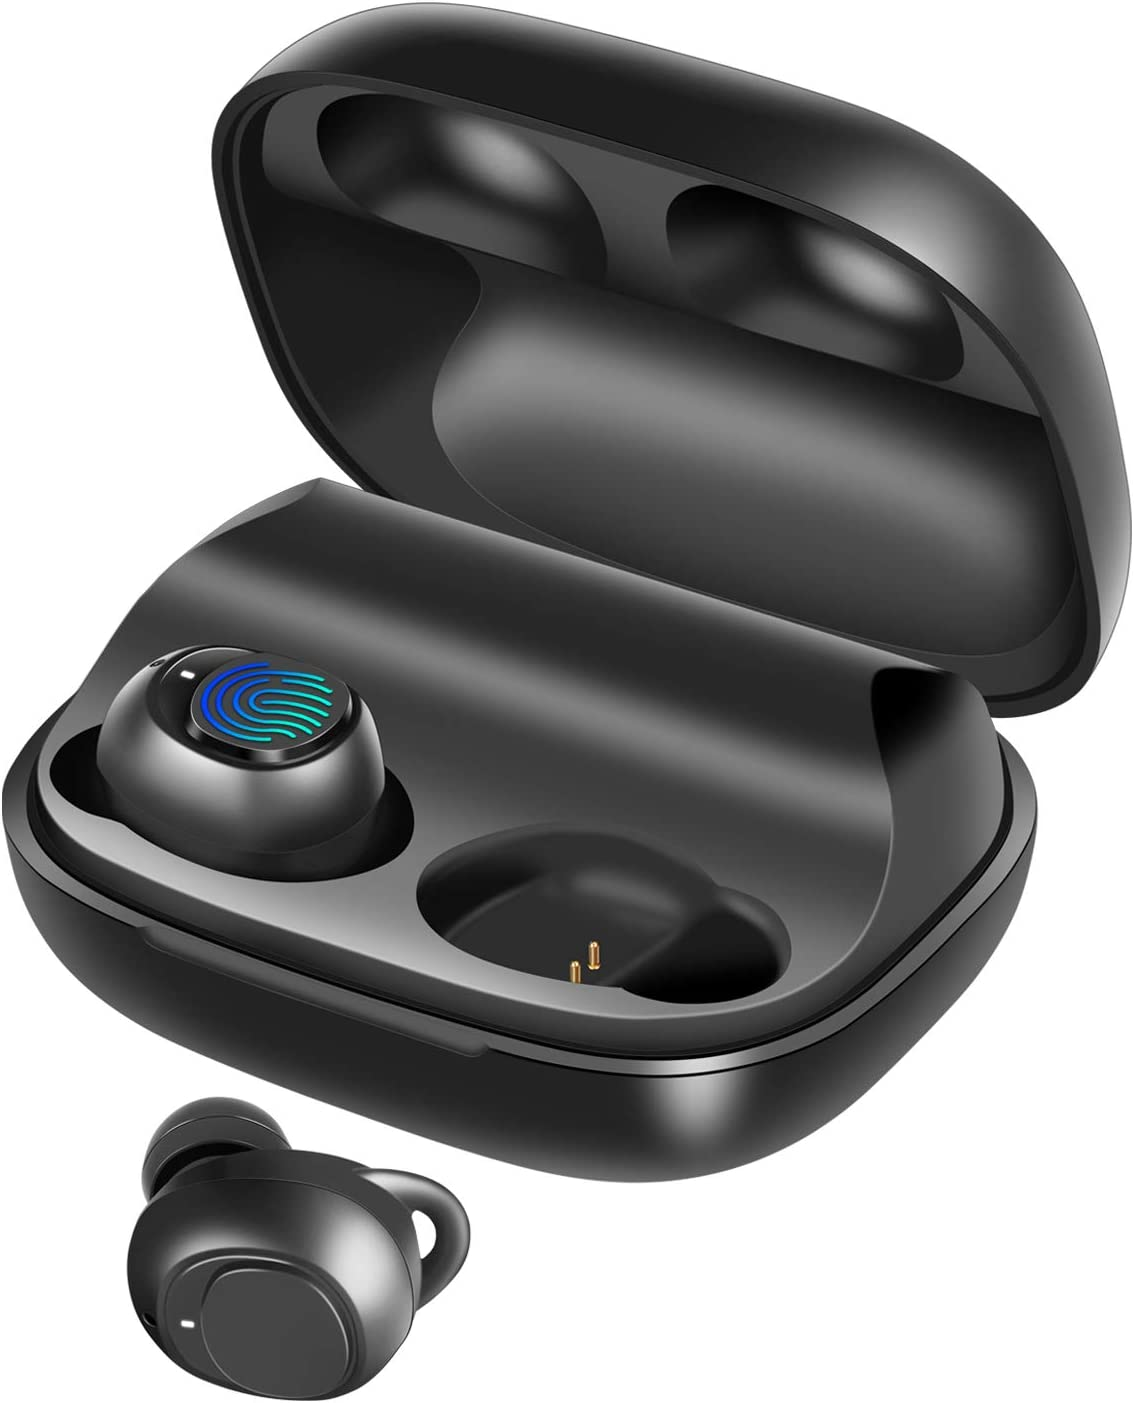 Wireless Earbuds, BassPal IPX7 Waterproof Bluetooth 5.0 Headphones, 60H Playtime, Deep Bass Stereo Sound Sports in-Ear Earphones Headset w Mic, Touch Control, AAC CVC 8.0, 2200mAh Rechargeable Case